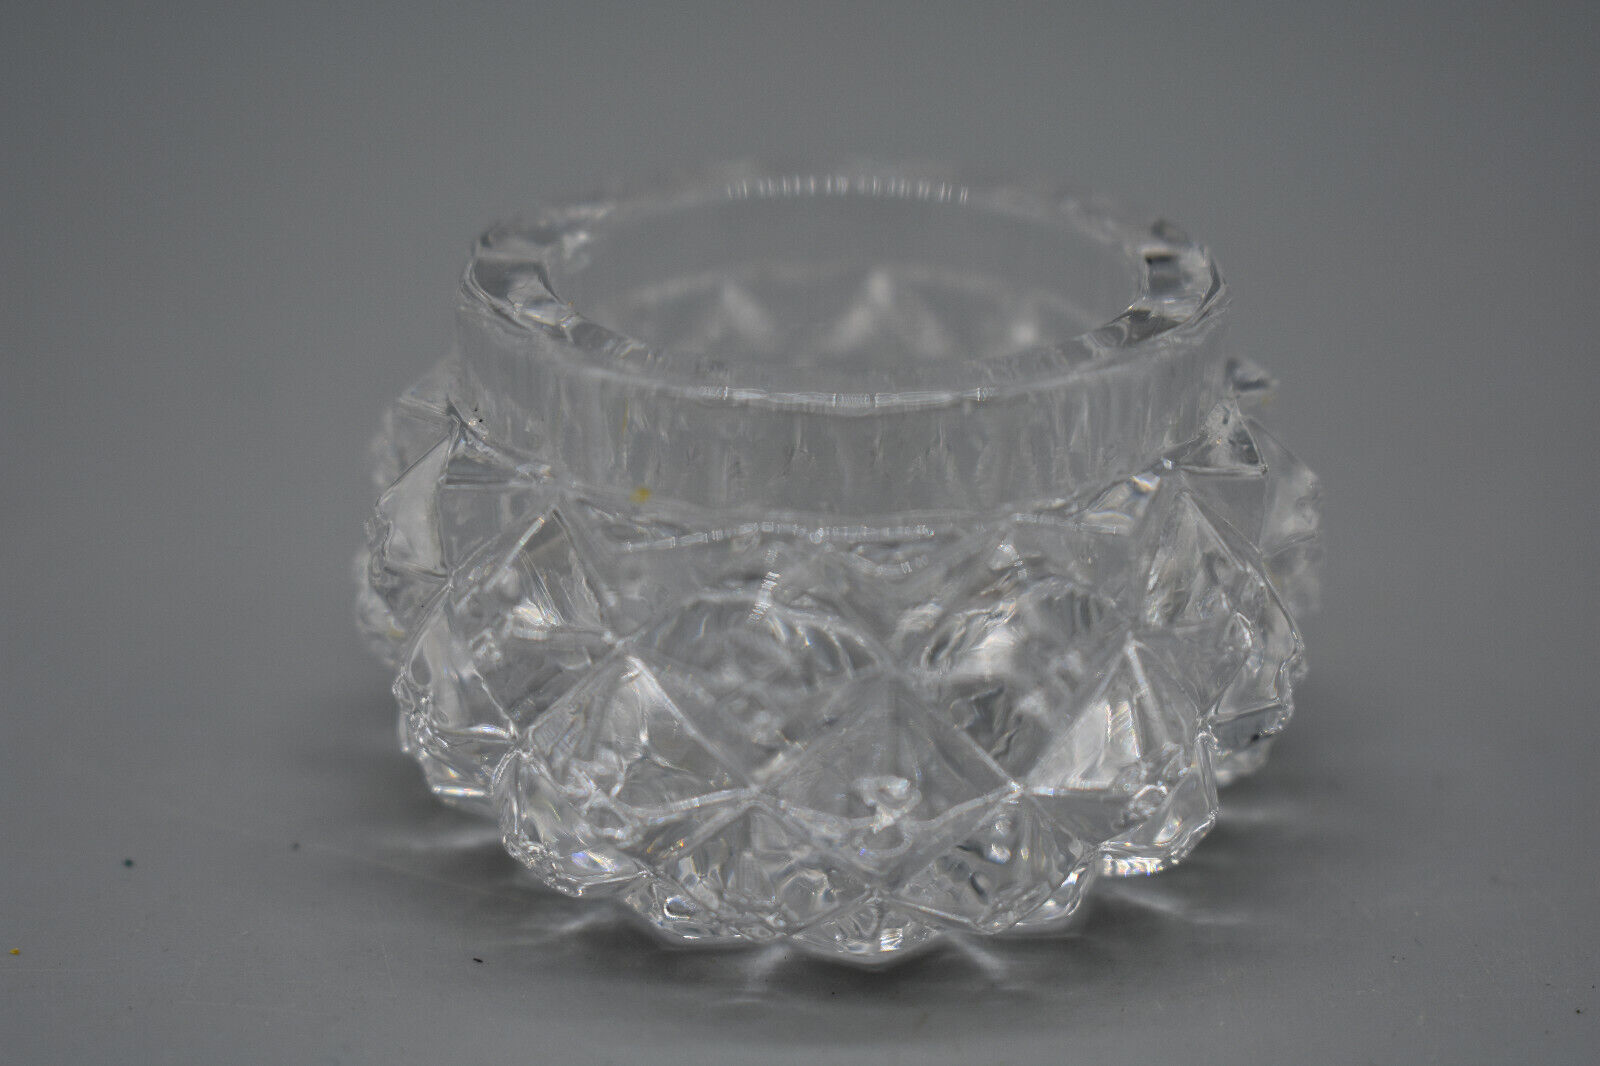 Cut Leaded Miniature Glass Bowl. Ring Size, 2 1/4 Wide, 1 1/4 Deep - Preowned - $14.99